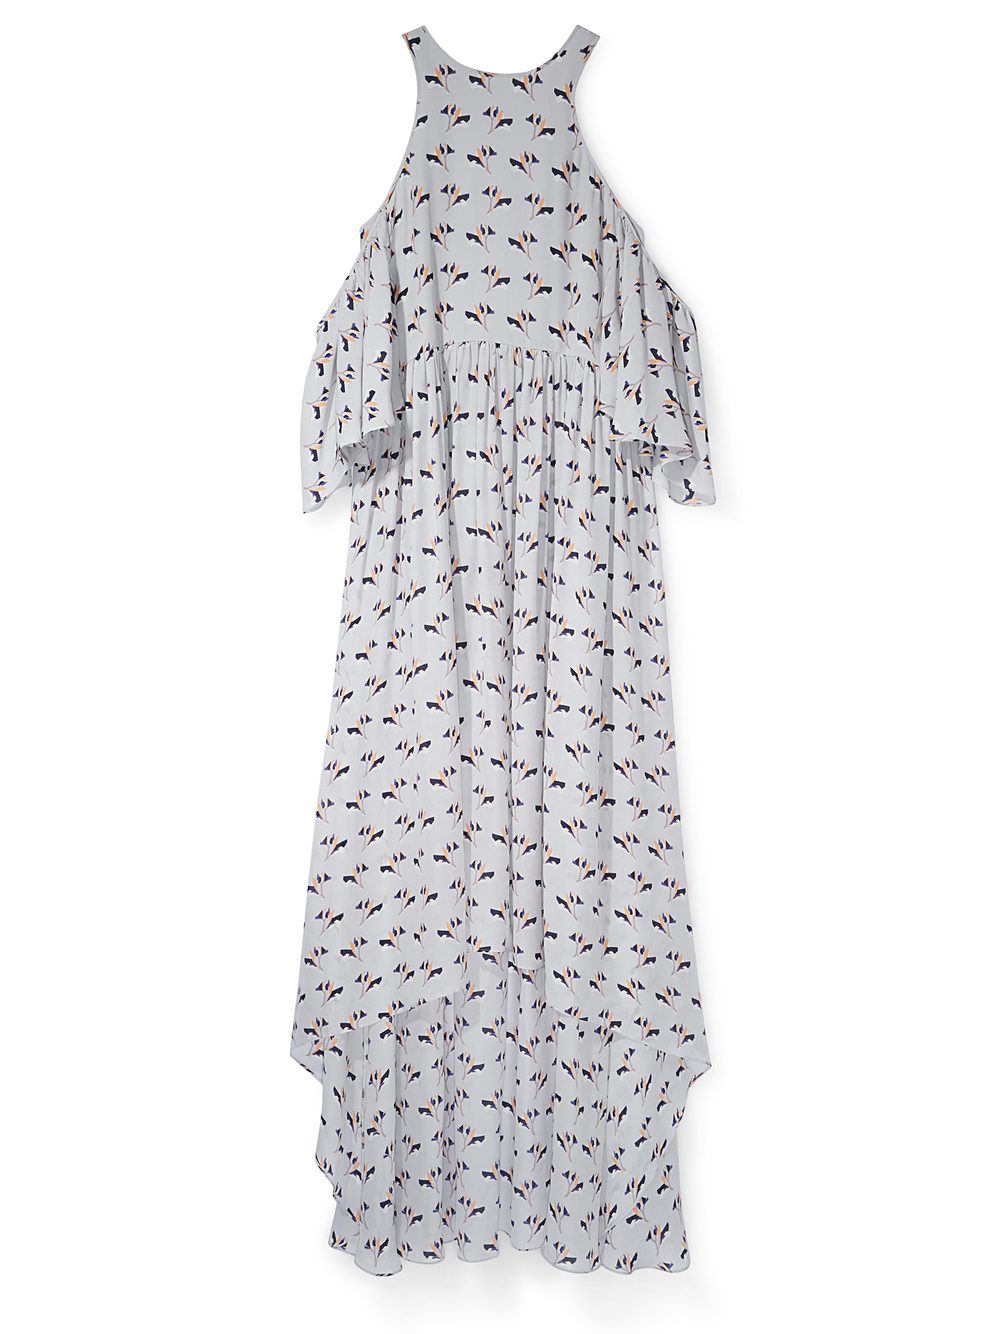 Go for glam with a floral maxi dress with cold shoulders. It's so easy to throw on and is bound to turn heads! Style it out with a pair of flats or clean white sneakers depending on your mood. Rebecca Minkoff 'Mindy' Dress